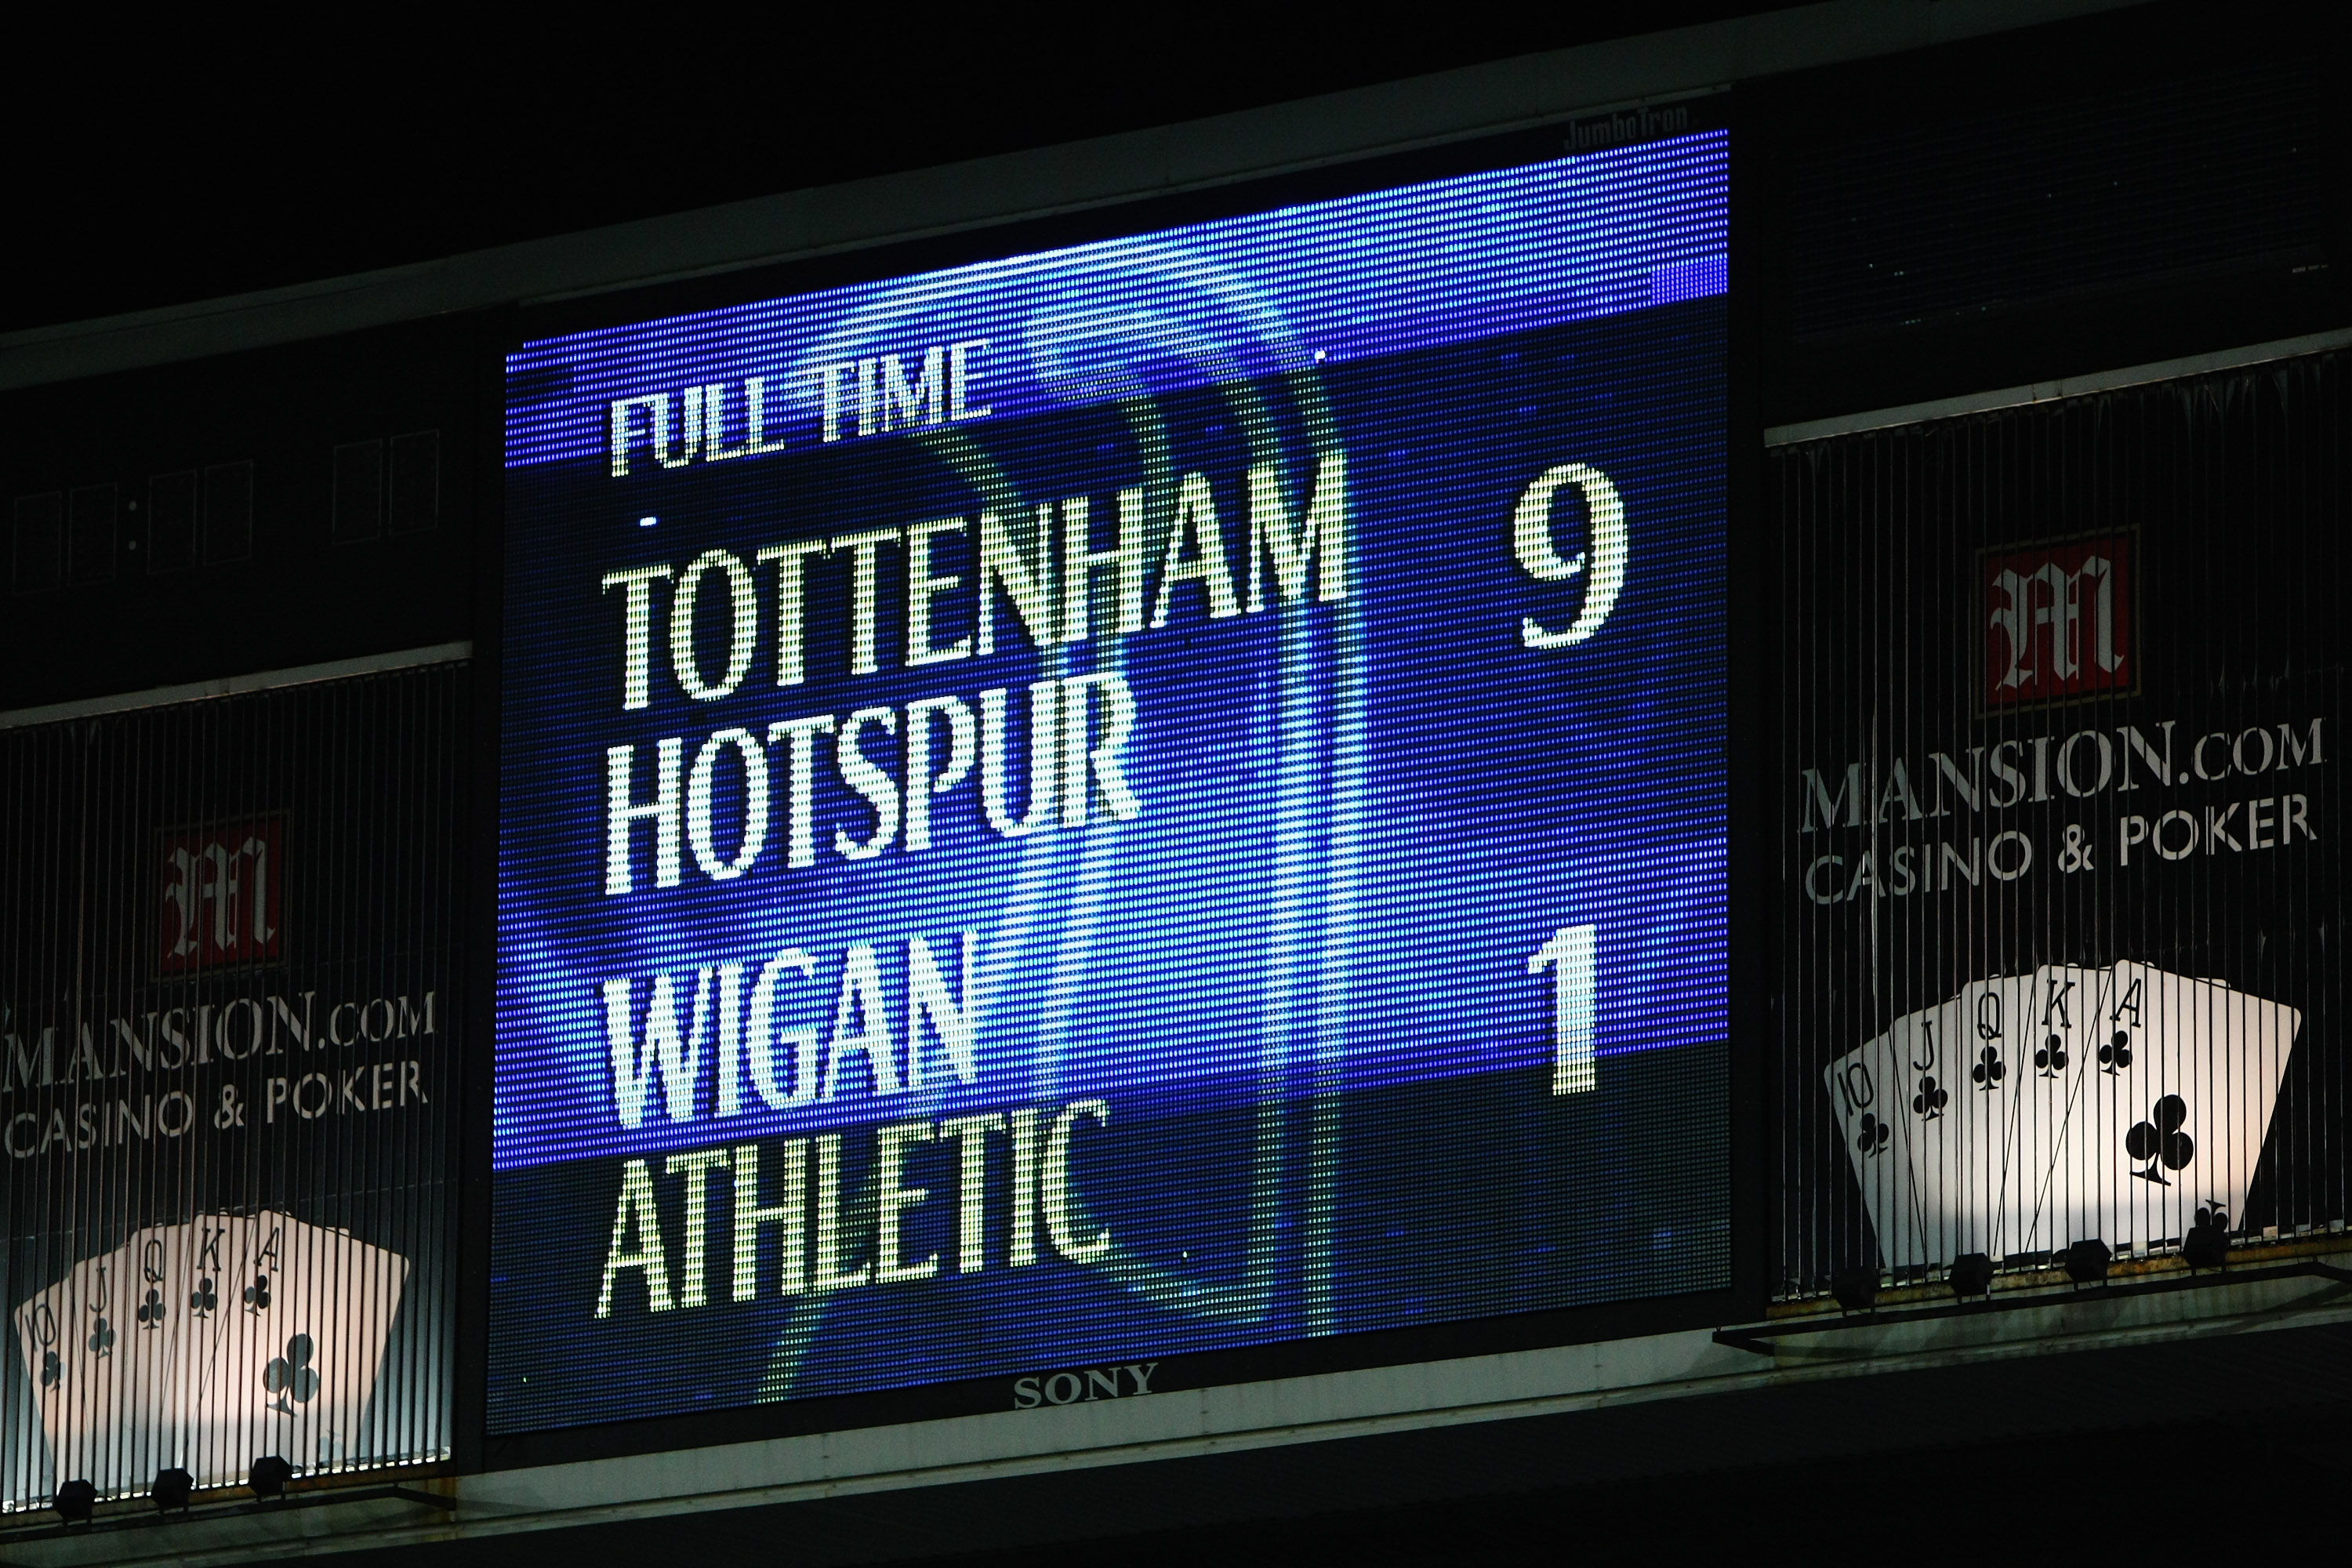 LONDON, ENGLAND - NOVEMBER 22:  The scoreboard shows the 9-1 scoreline after the Barclays Premier League match between Tottenham Hotspur and Wigan Athletic at White Hart Lane on November 22, 2009 in London, England.  (Photo by Clive Rose/Getty Images)